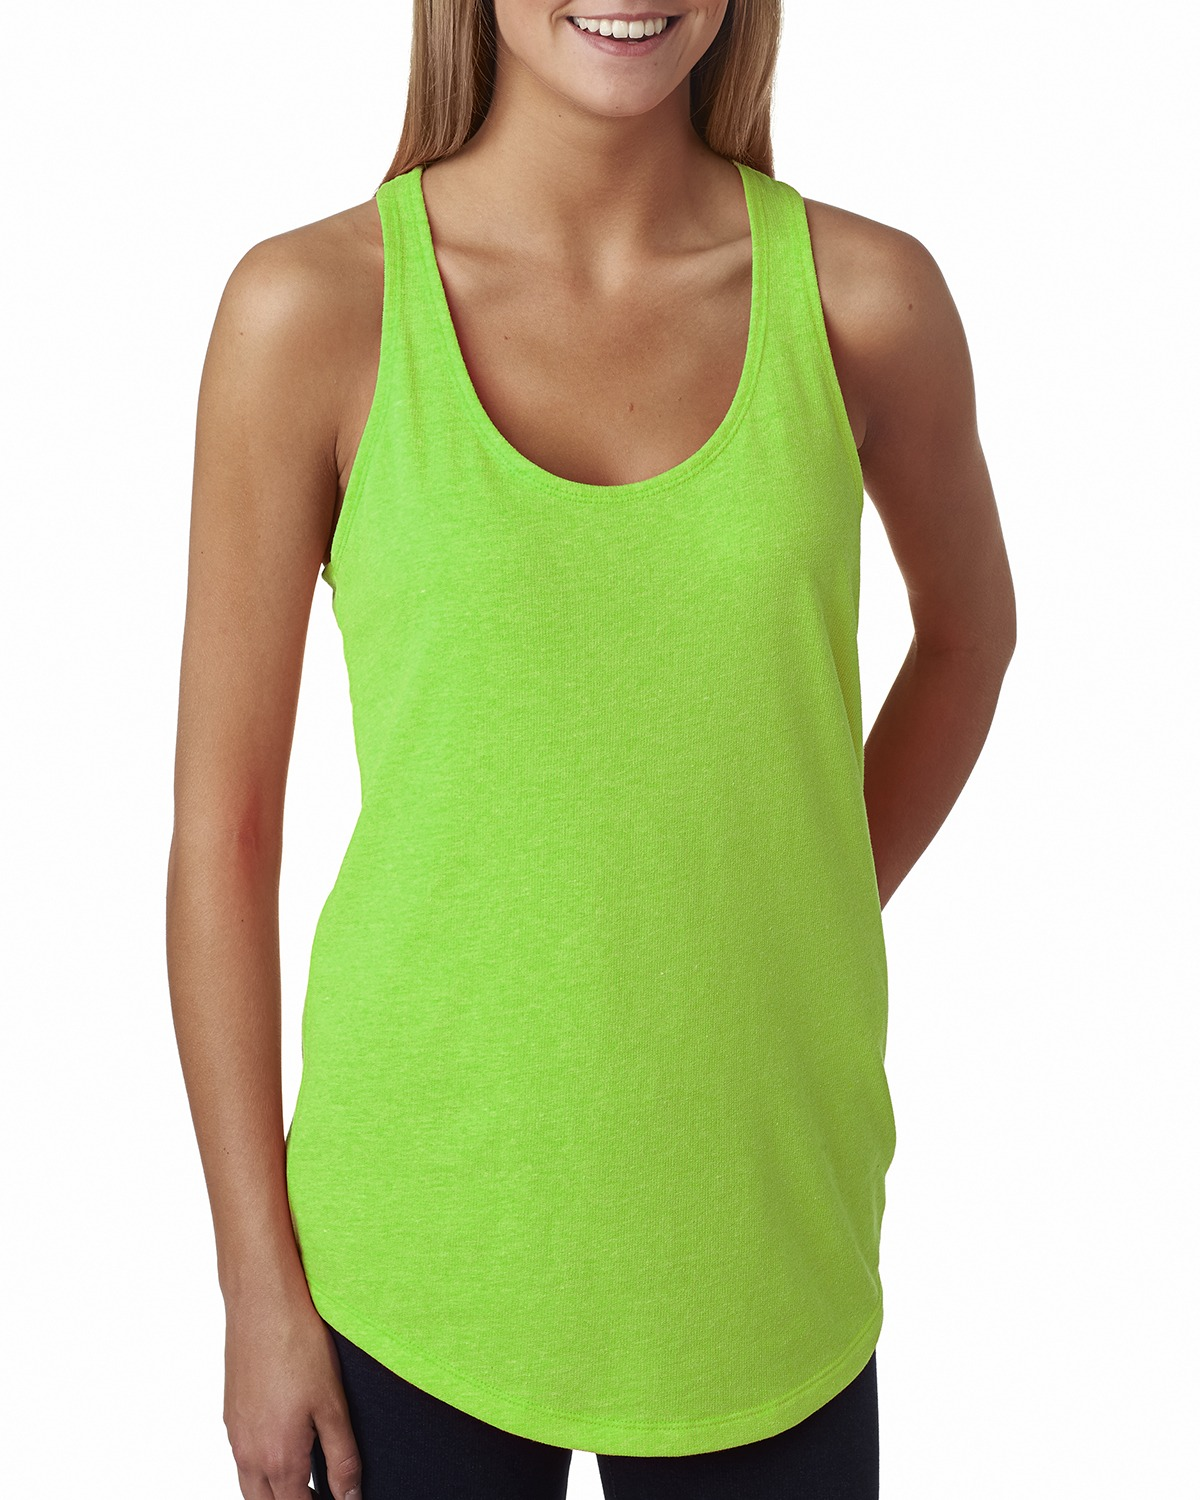 click to view Neon Heather Green